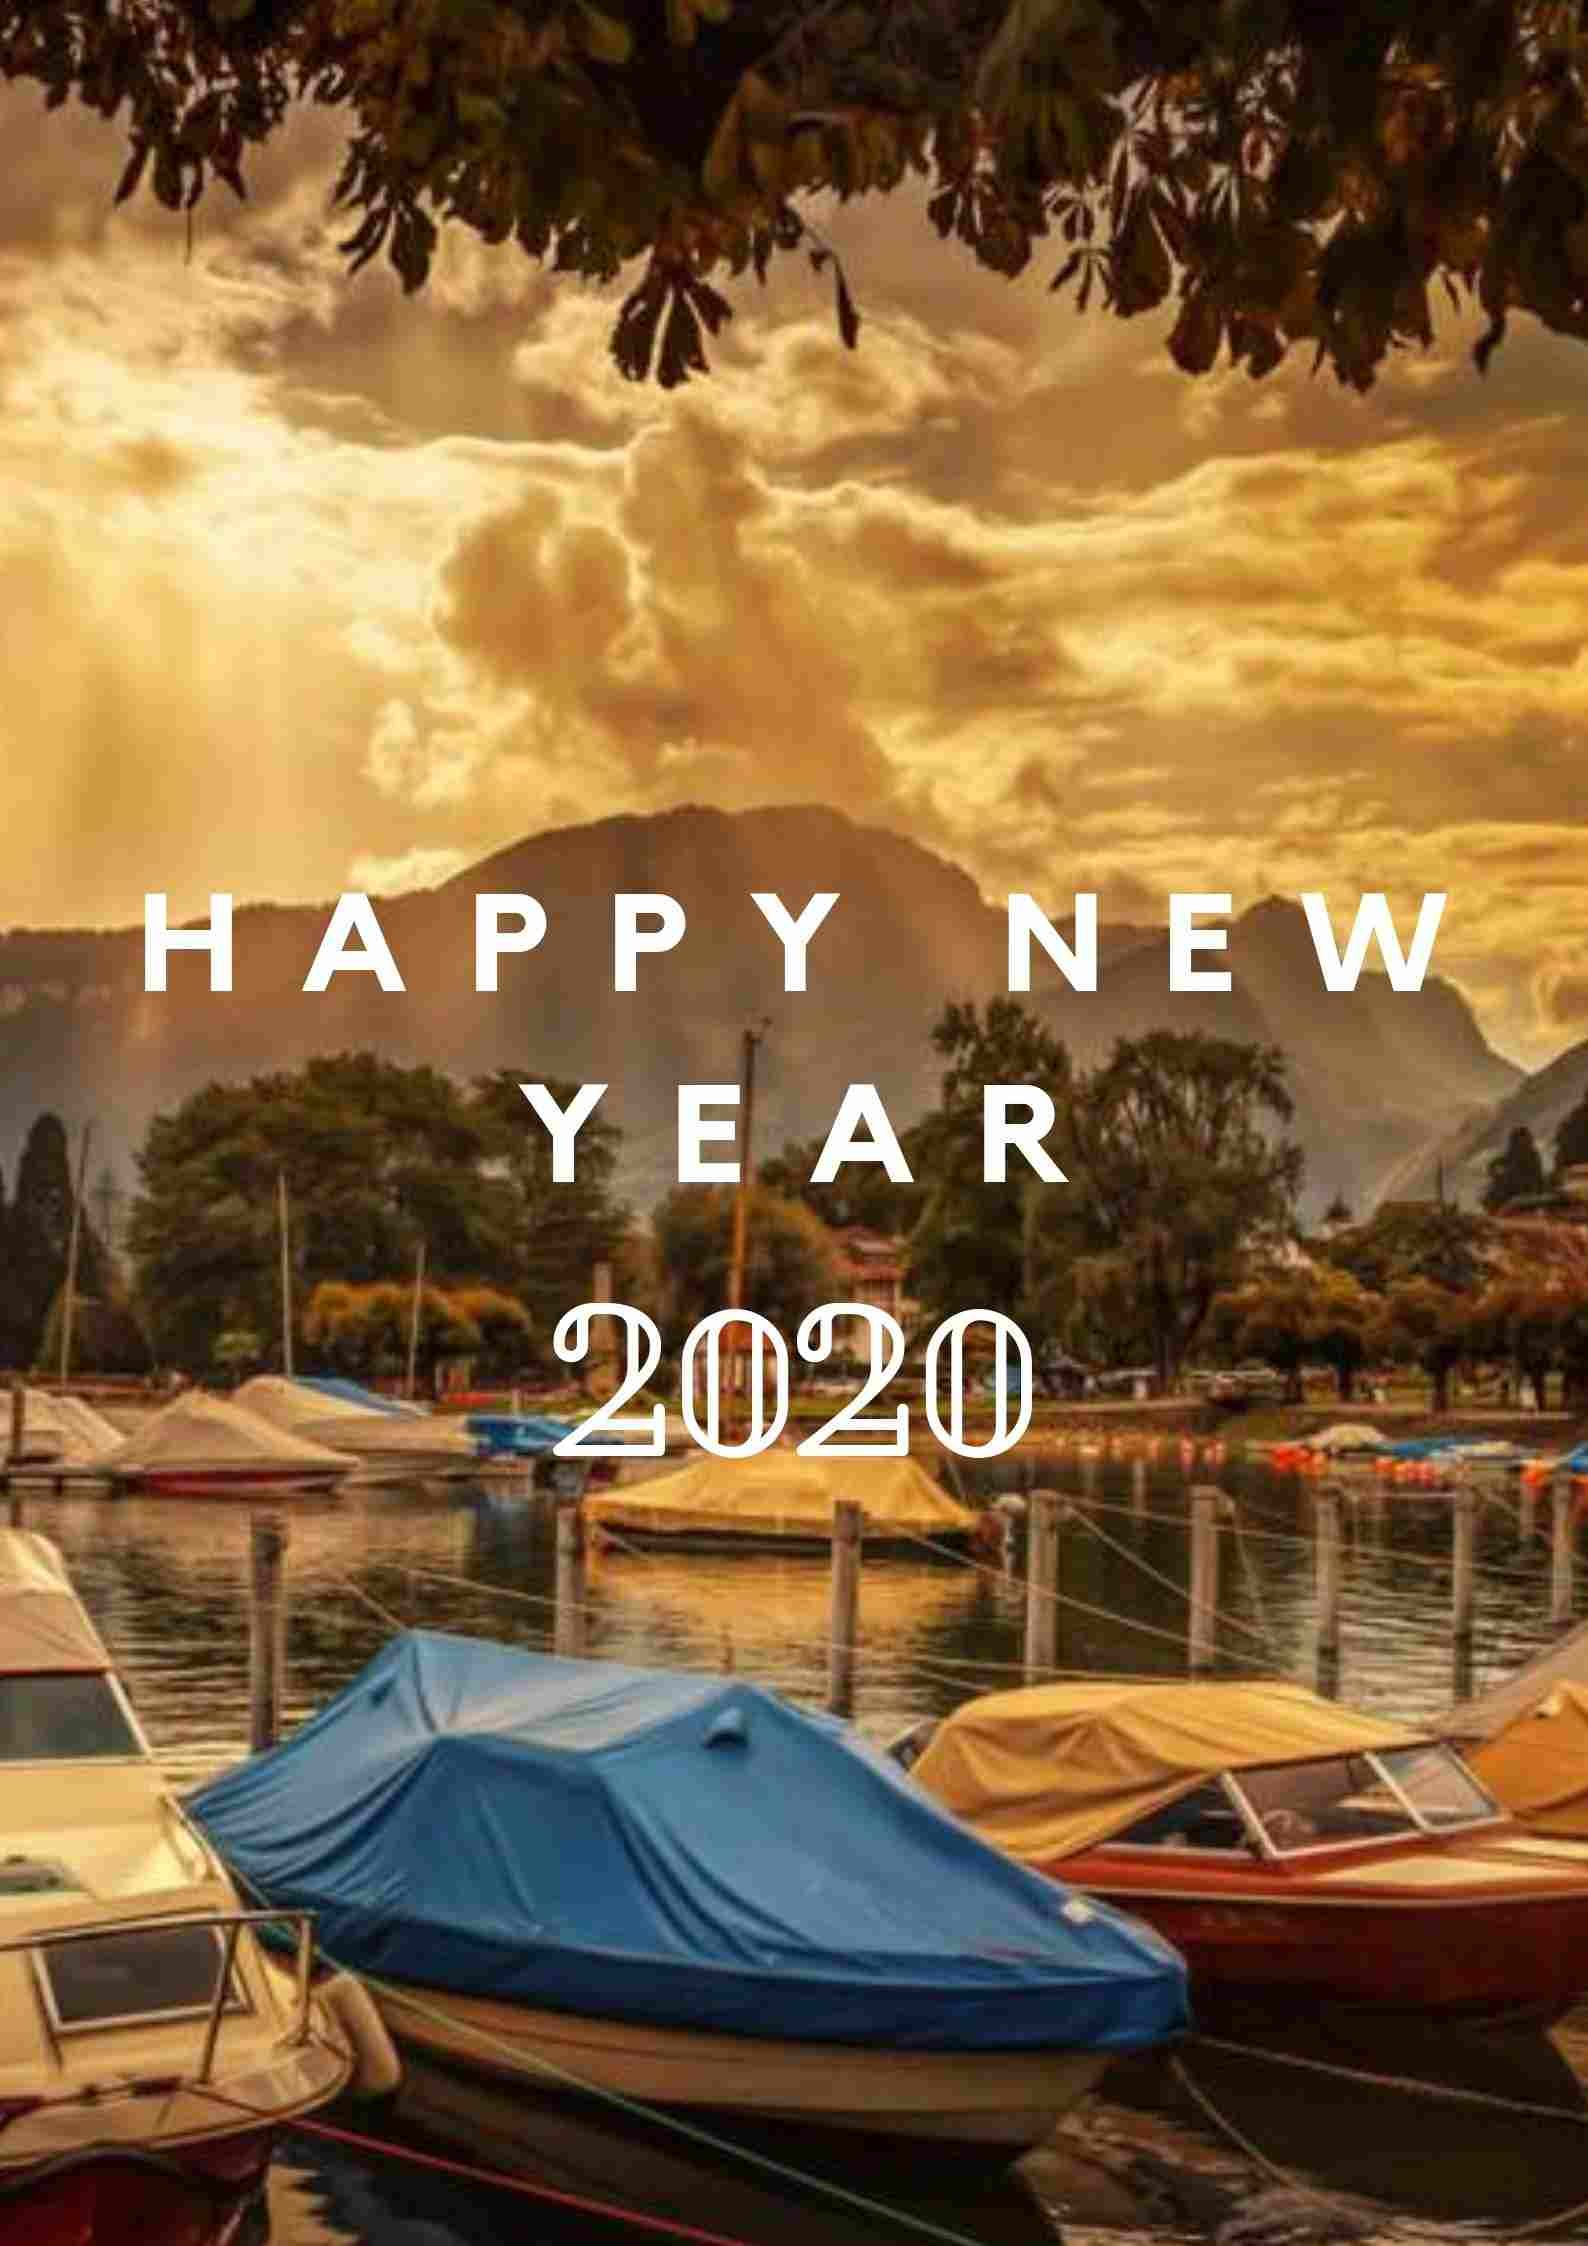 New year wallpapers for iphone 2020. I wish the coming